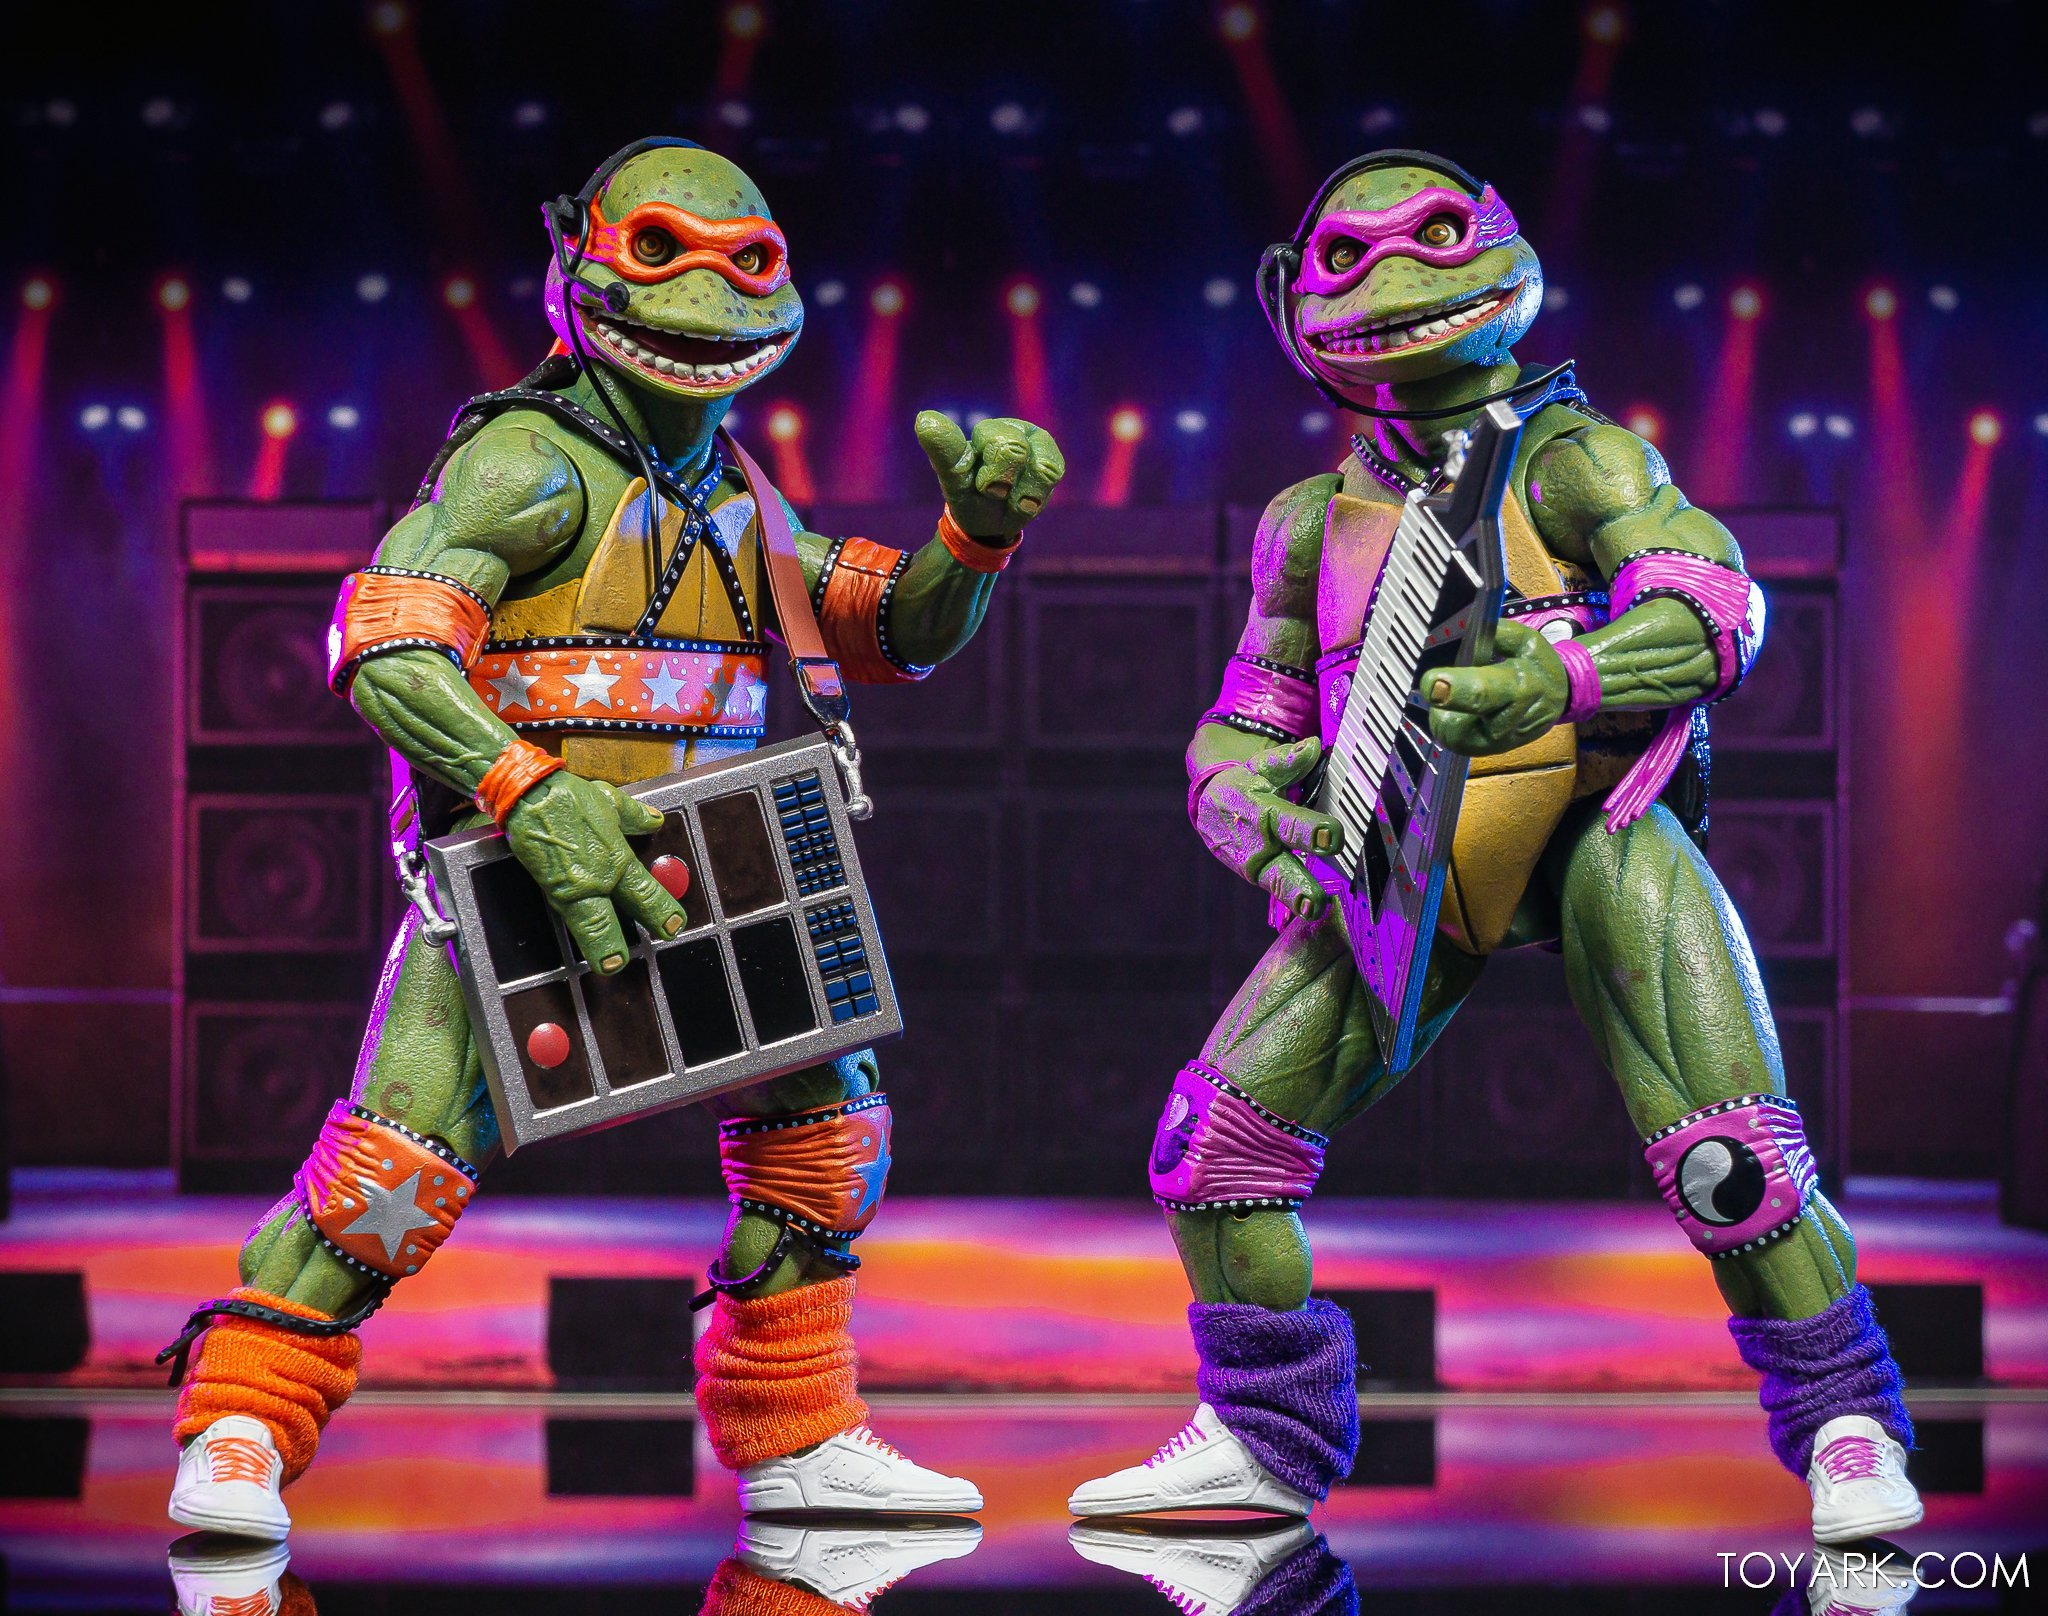 https://news.toyark.com/wp-content/uploads/sites/4/2020/07/SDCC-2020-TMNT-Musical-Mutagen-Tour-051.jpg